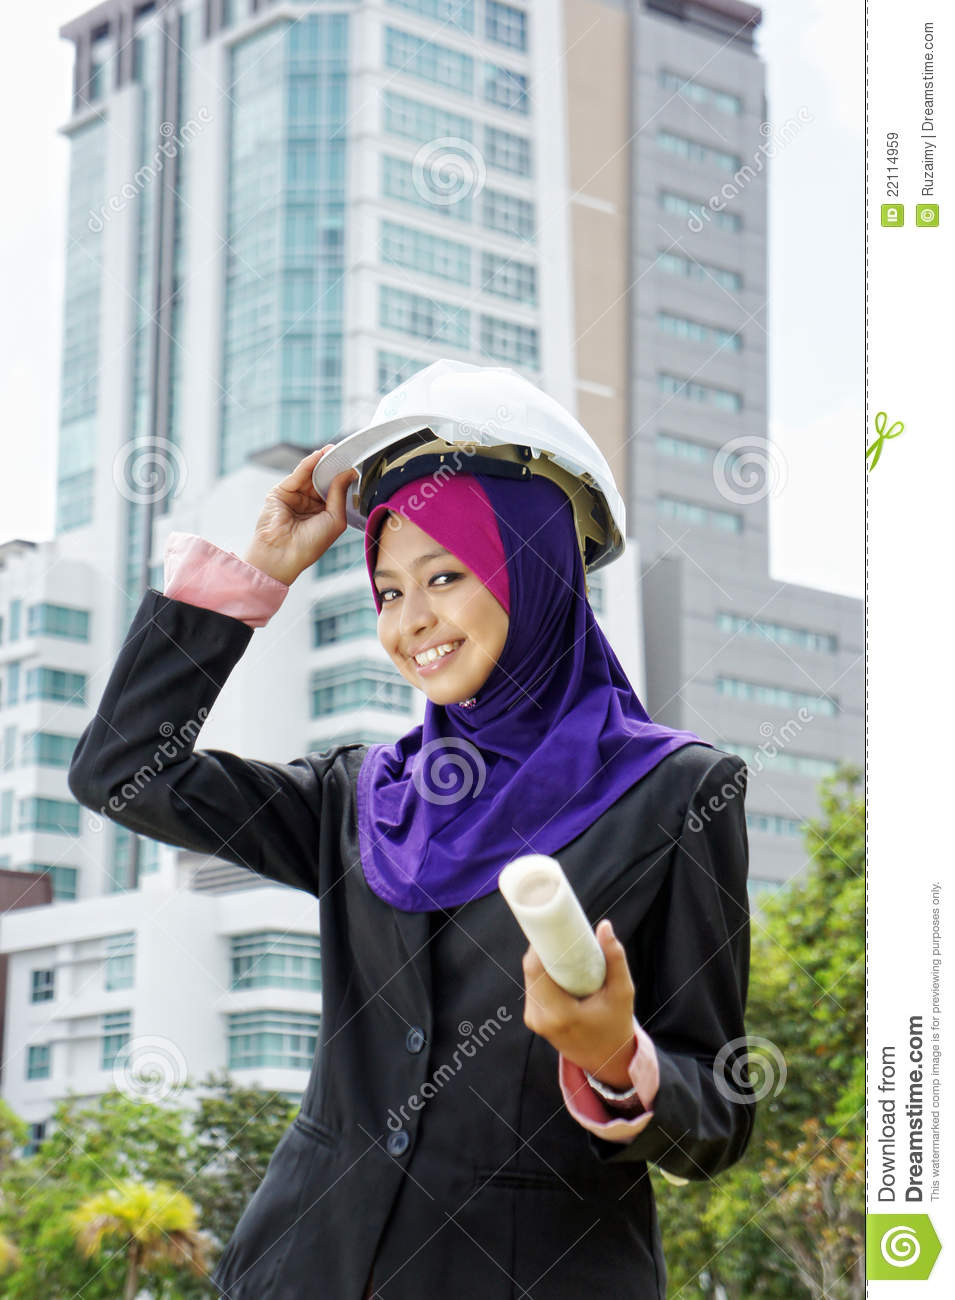 frenchville muslim women dating site Random thoughts 17 may 2009 :: 00:23 our revenge will be the laughter of our children milo mulanax :: scheller, illinois :: (954) 915-8393 i liked your hair before you got straight bangs.